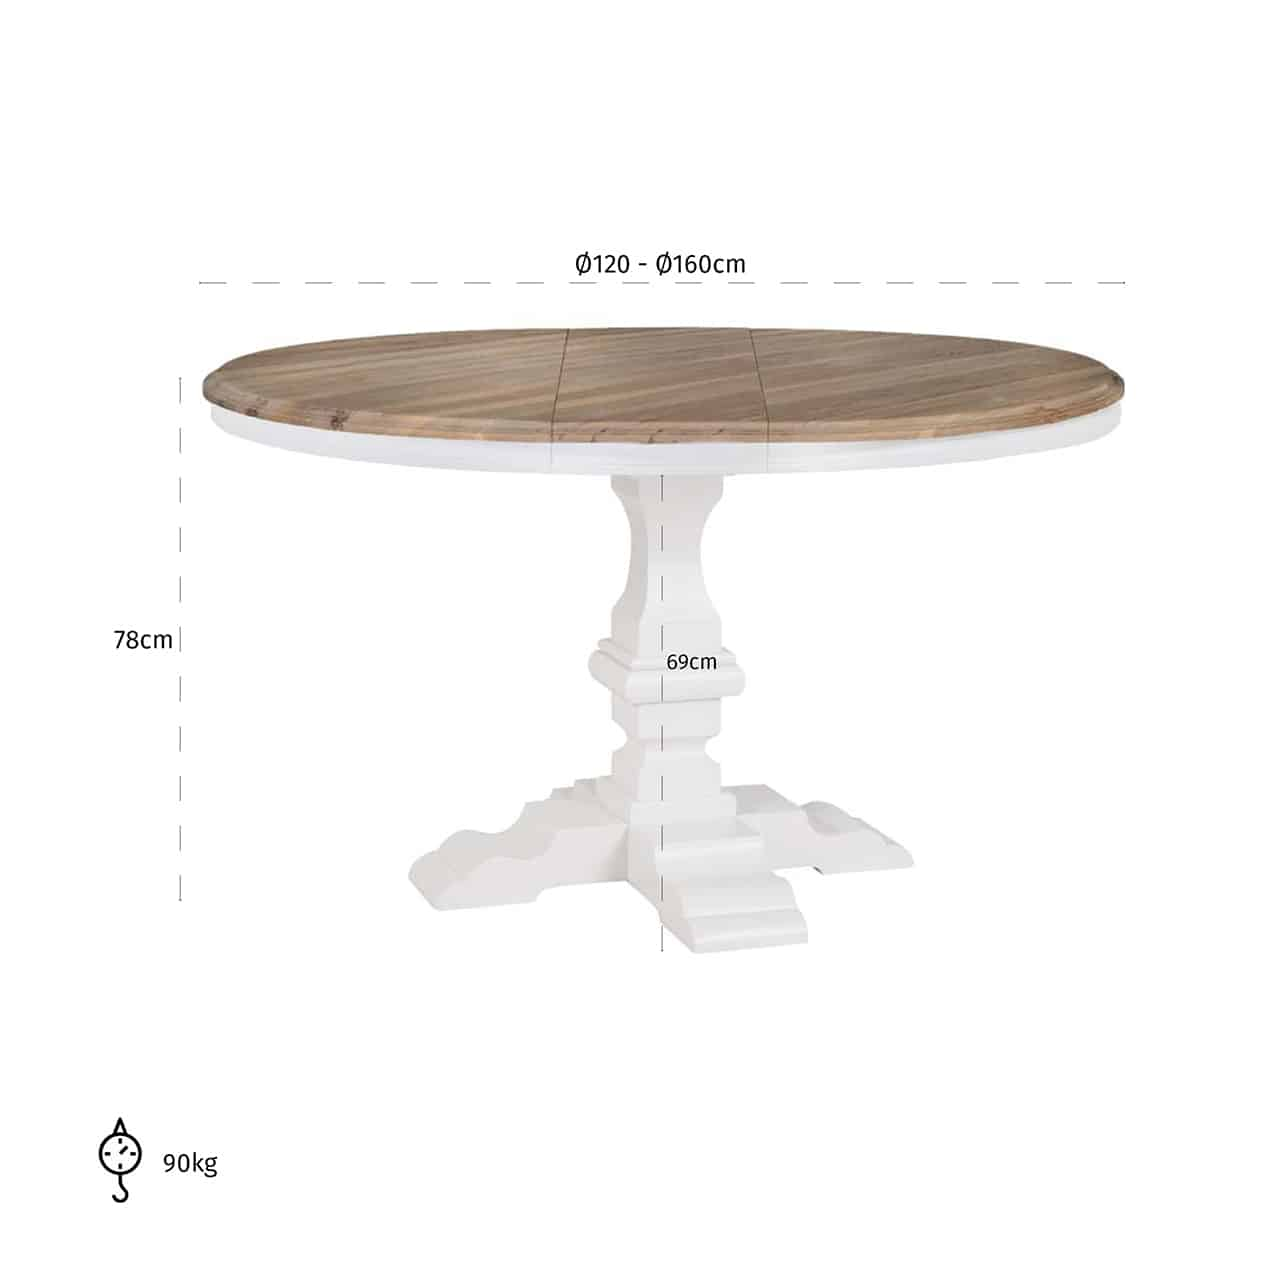 Modele Salle A Manger Table Ronde table ronde avec allonge pied central blanc nancy richmond